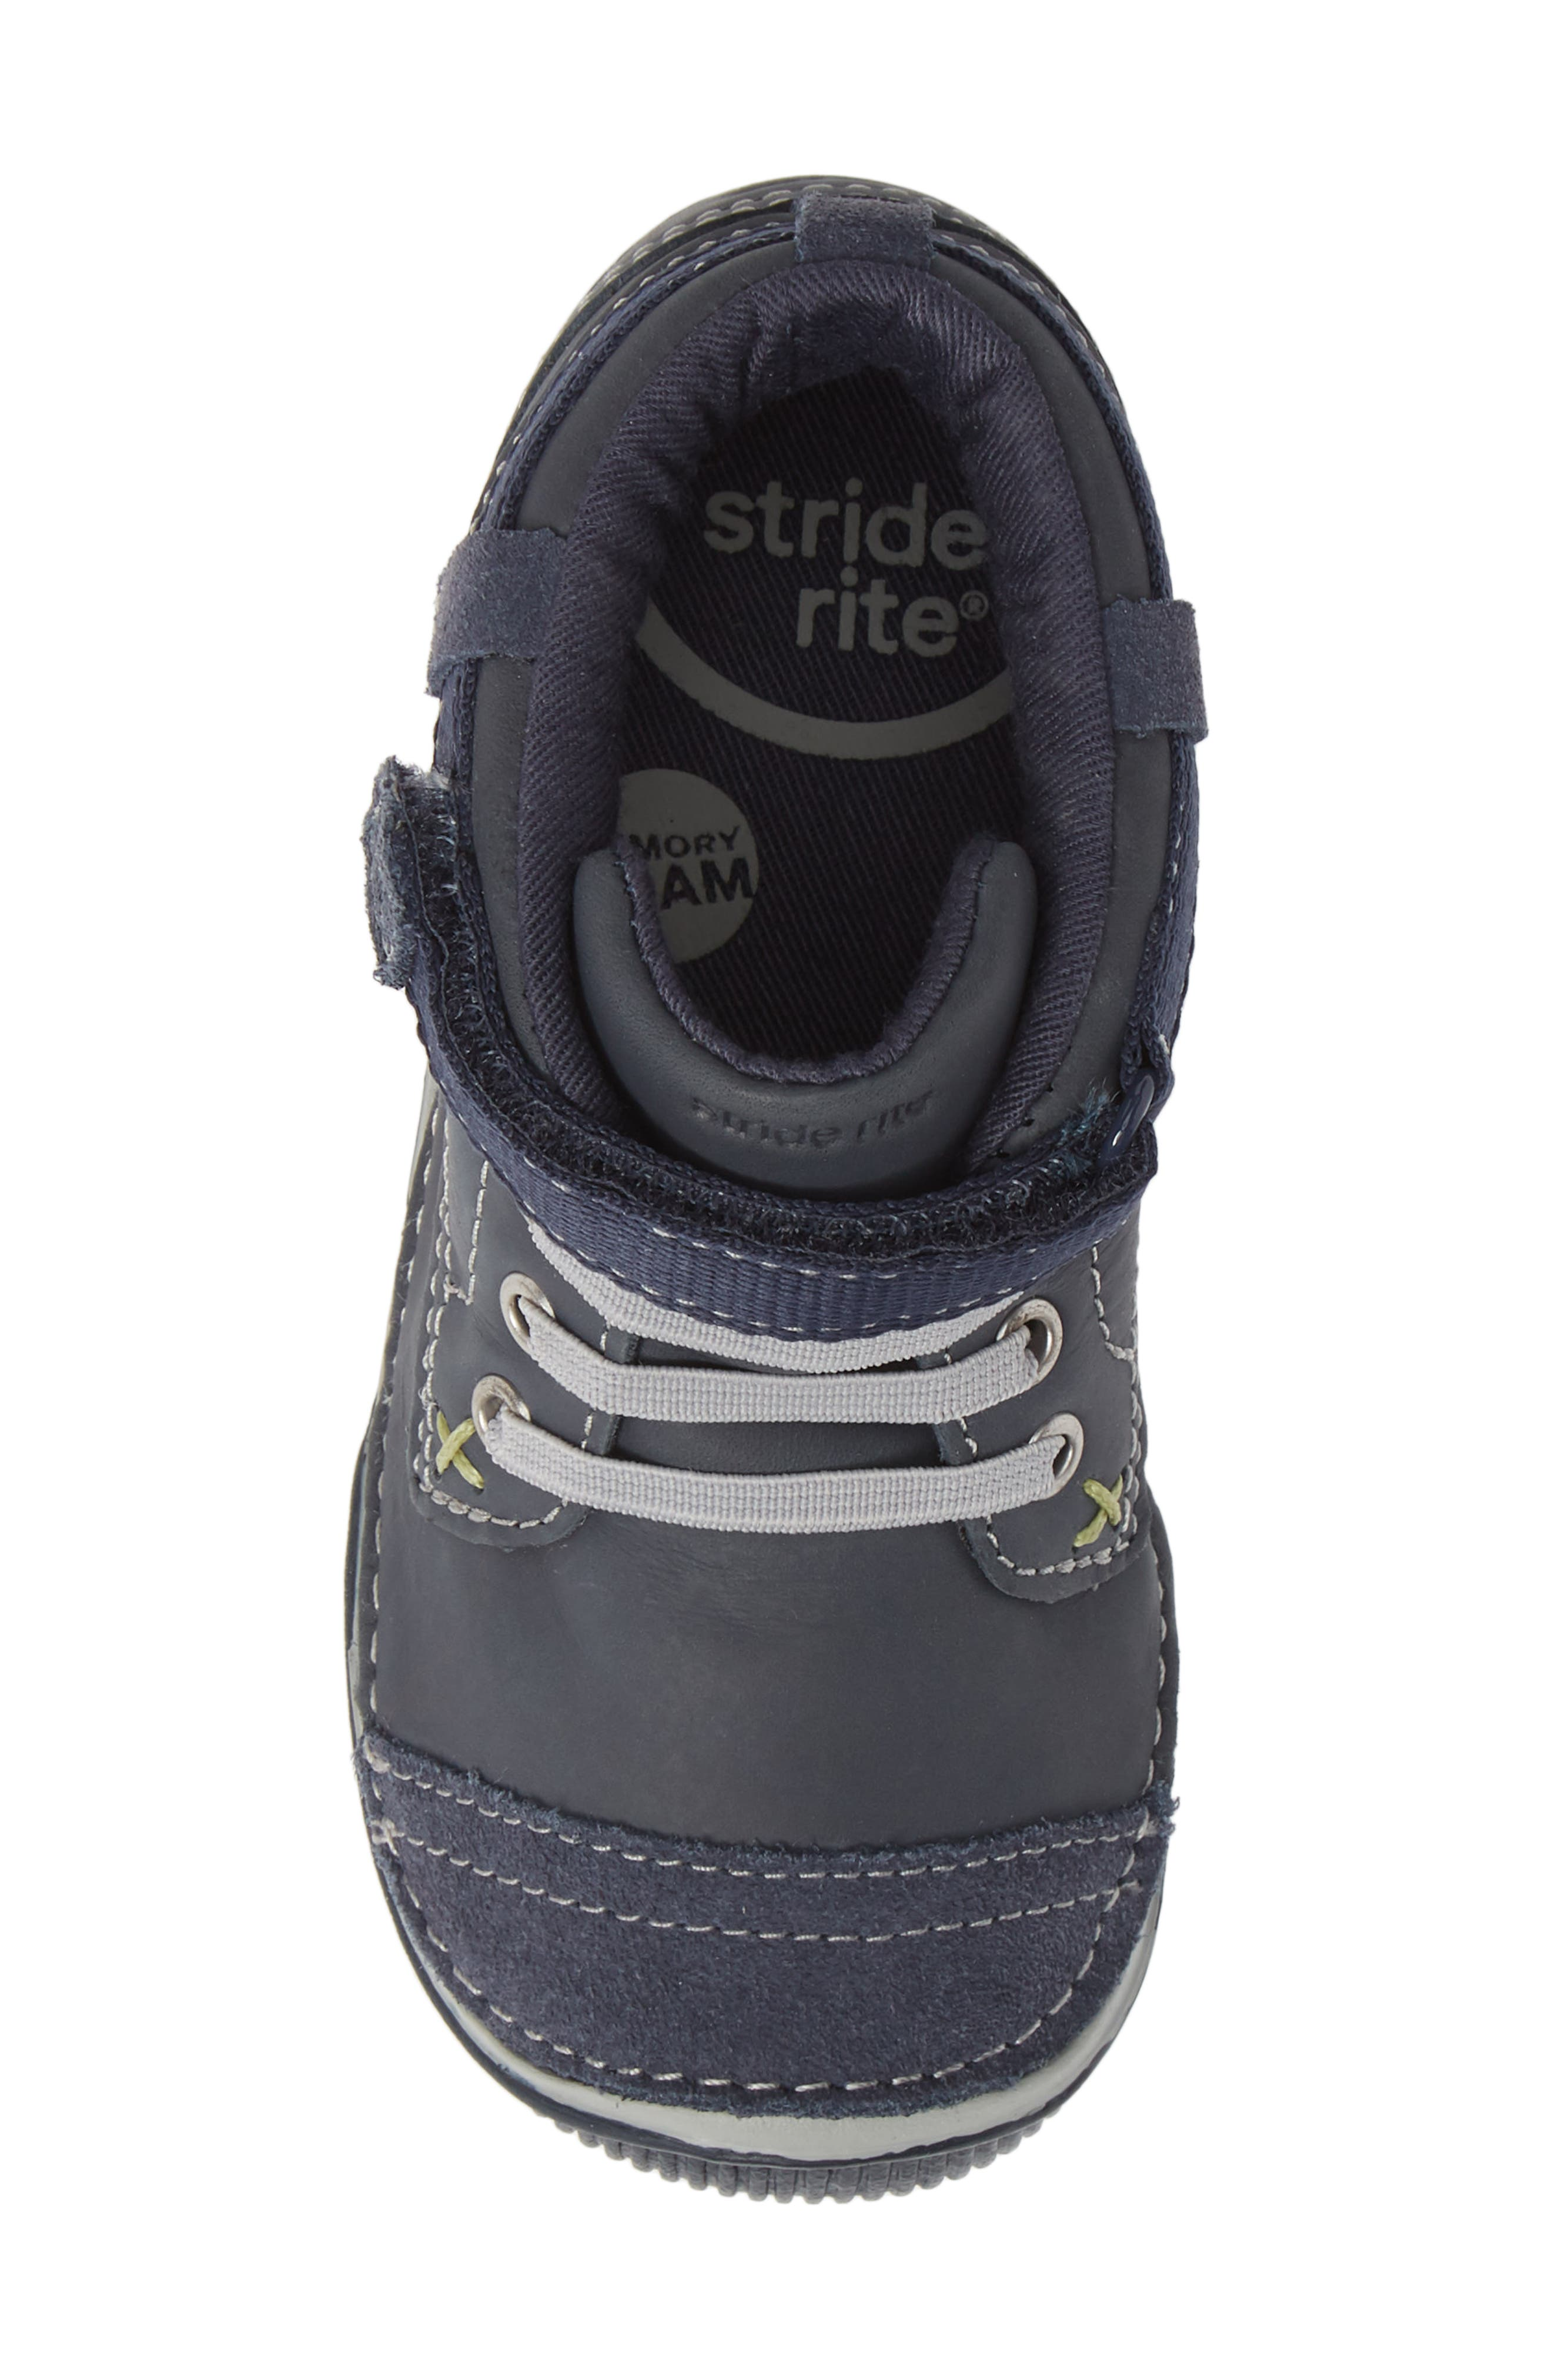 'Garrett' High Top Bootie Sneaker,                             Alternate thumbnail 5, color,                             NAVY